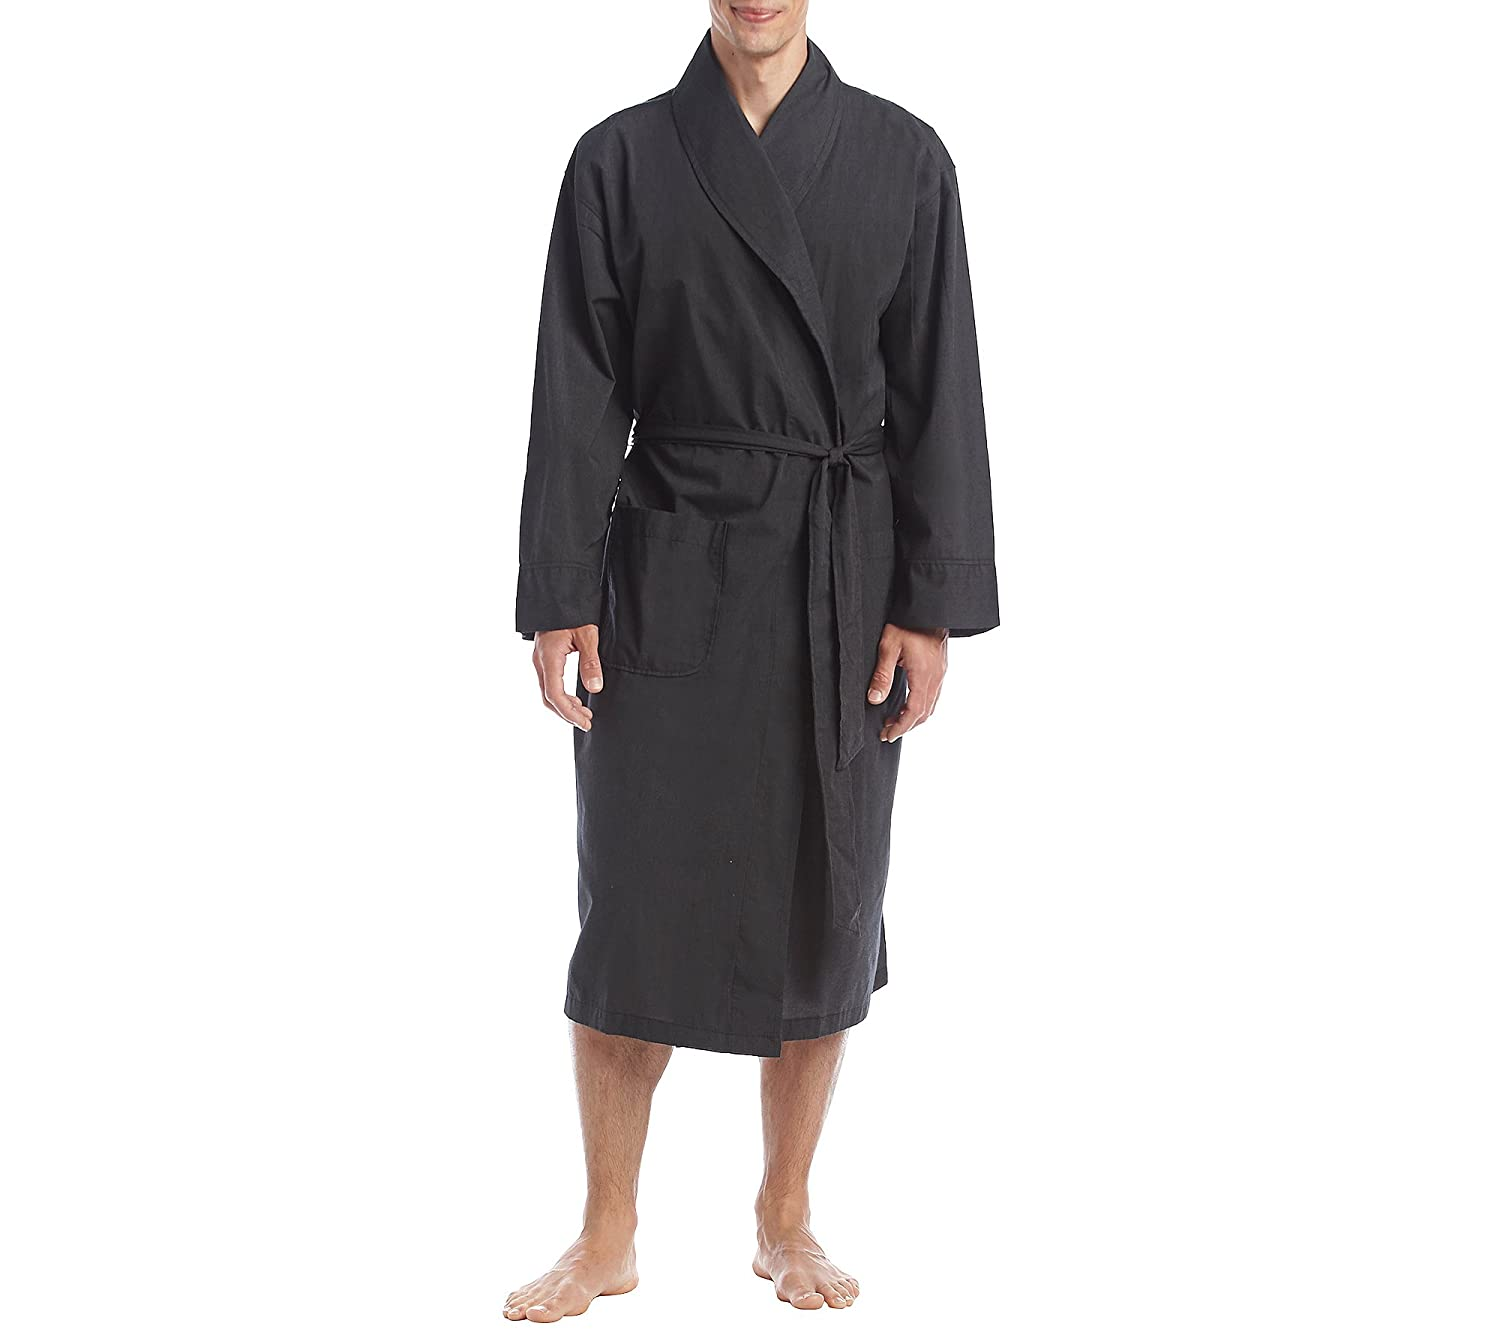 Hanes Men's Size Woven Shawl Collar Robe, Black, Extra Large Tall/2 Extra Large Tall 4204T